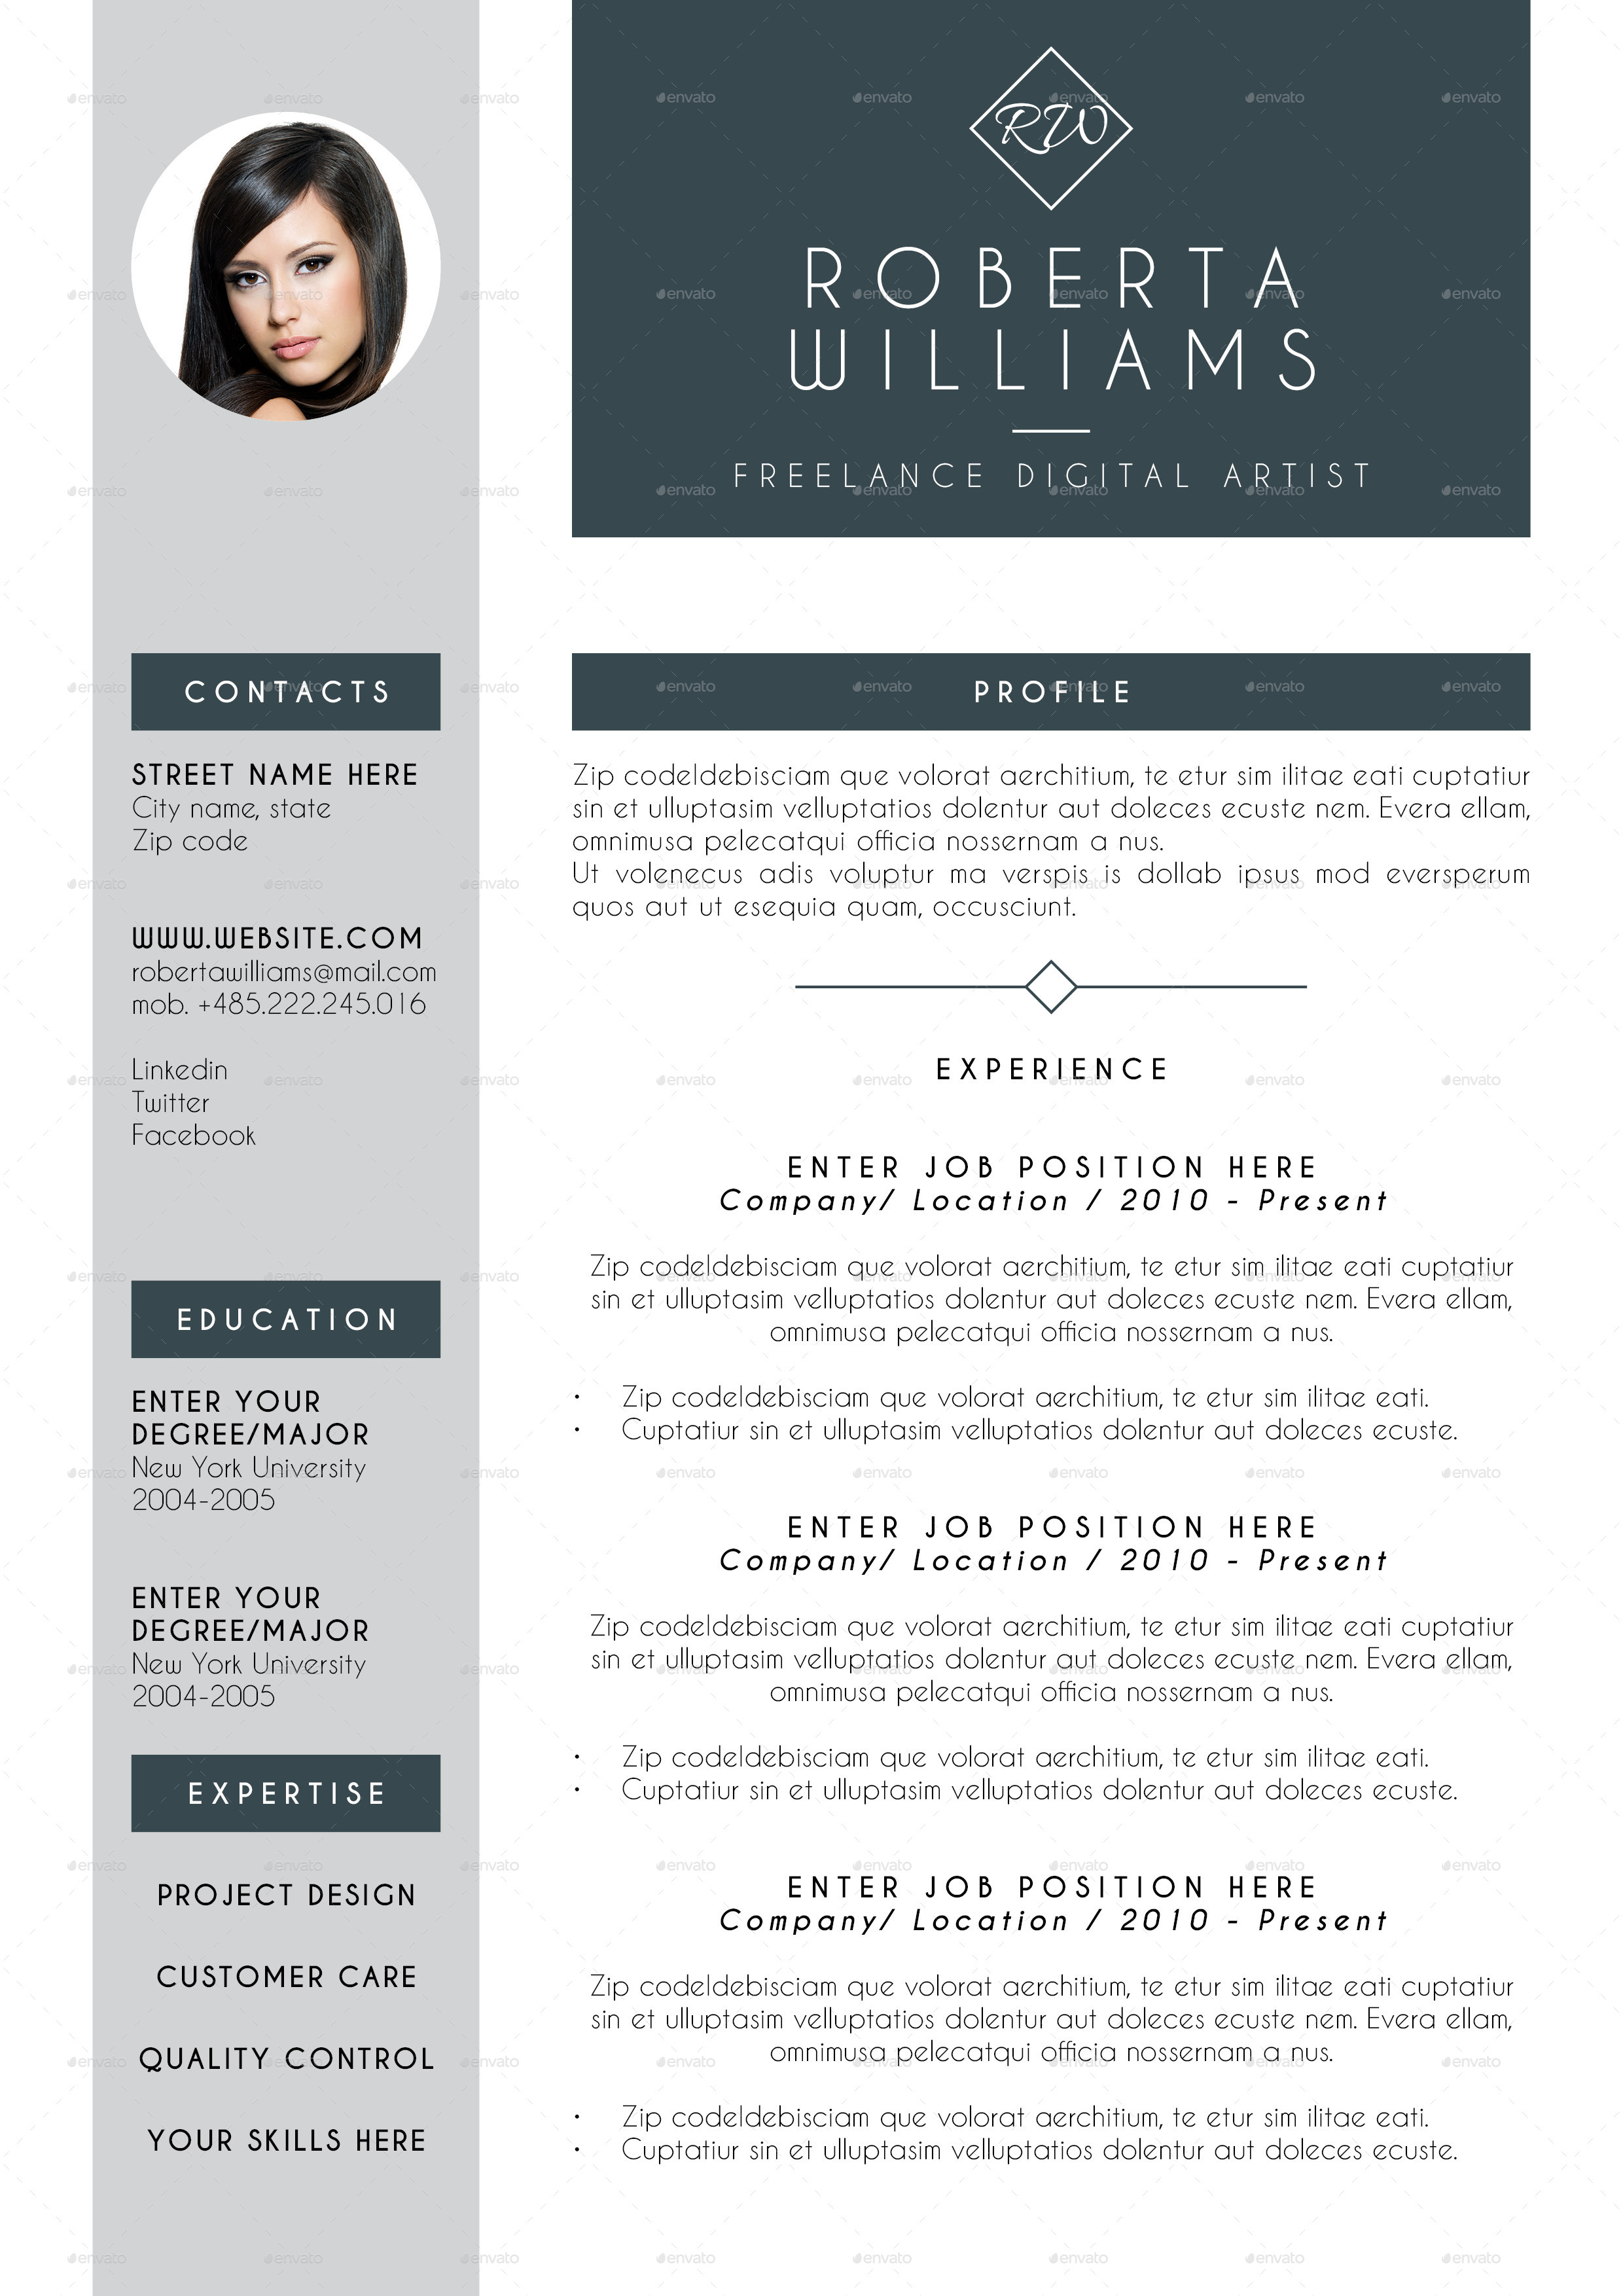 Professional Resume CV Indesign Template By Cesarescarselletti GraphicRiver